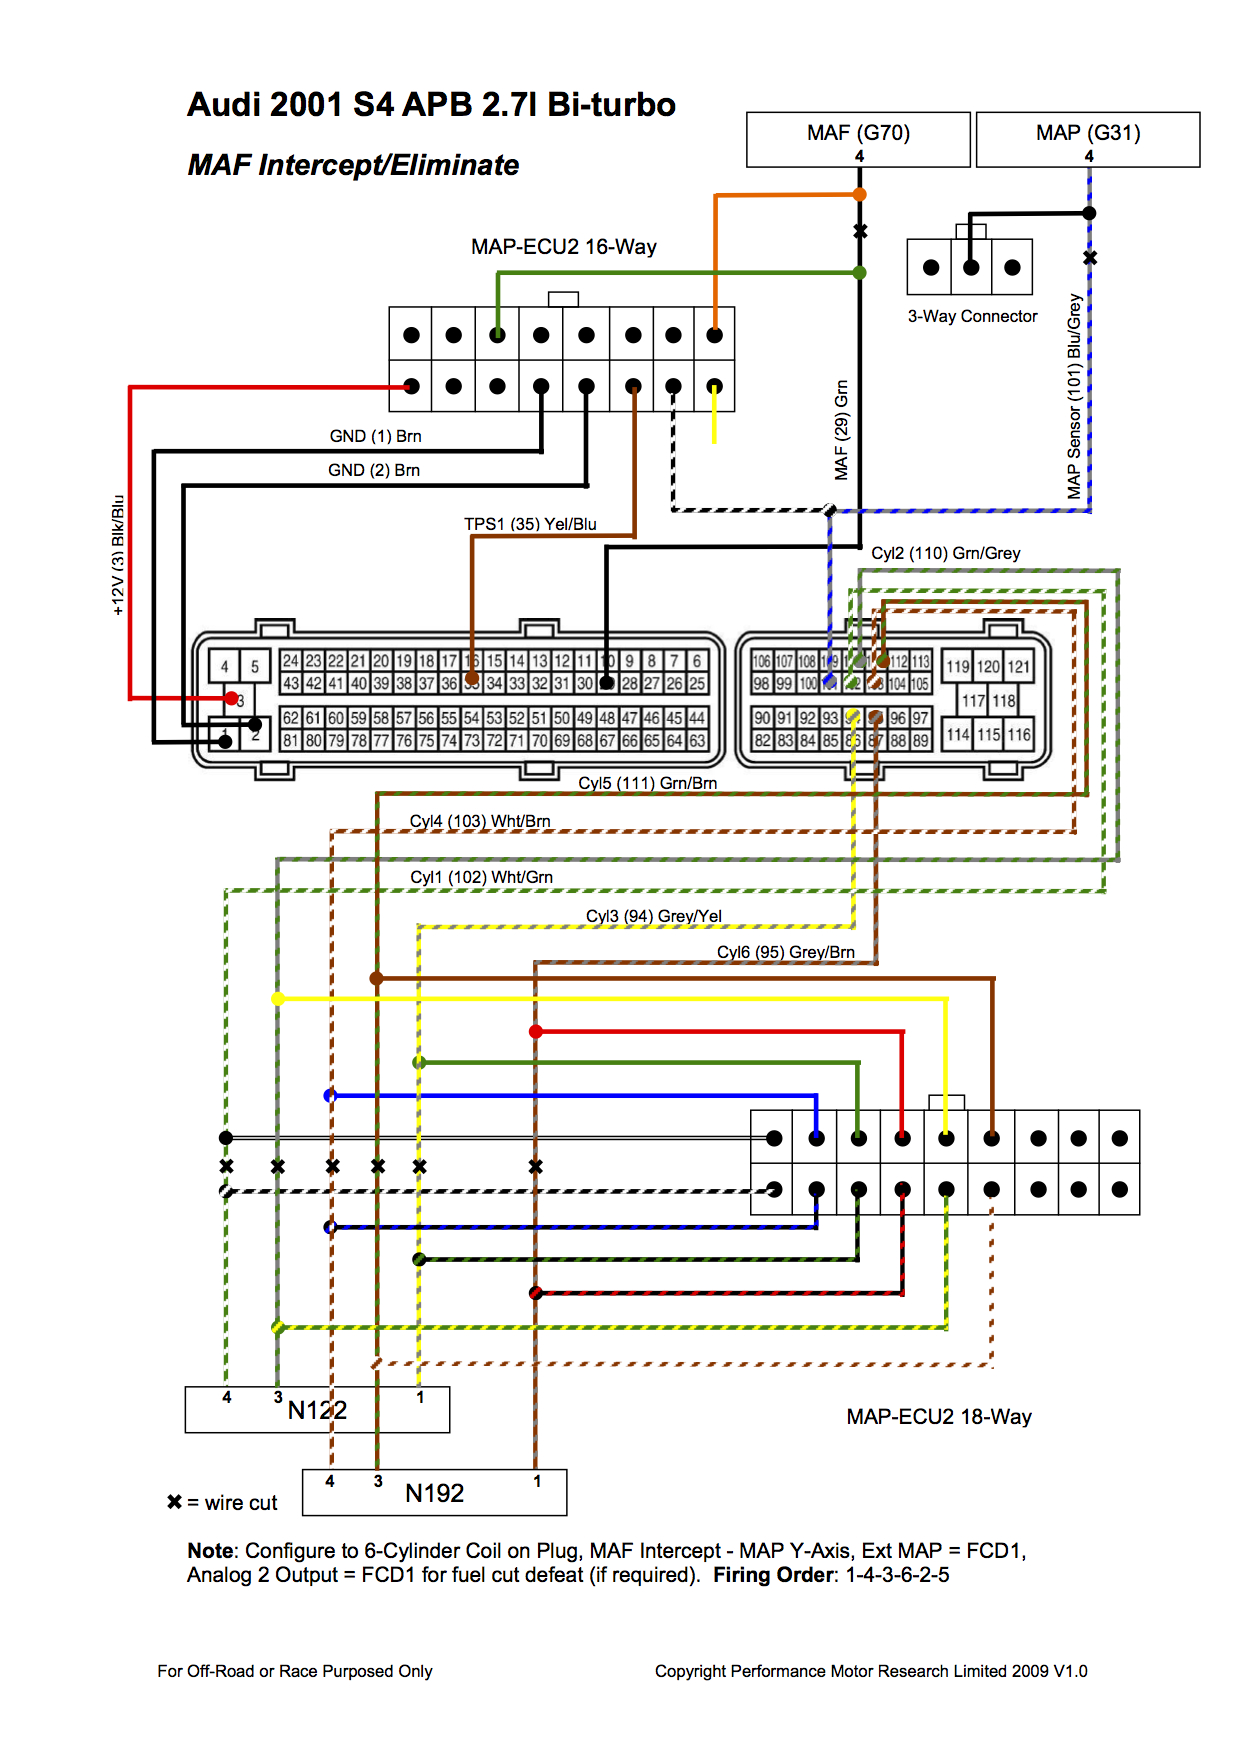 Audi S4 20011 ecu wiring diagram paccar ecu wiring diagram \u2022 wiring diagrams j  at edmiracle.co